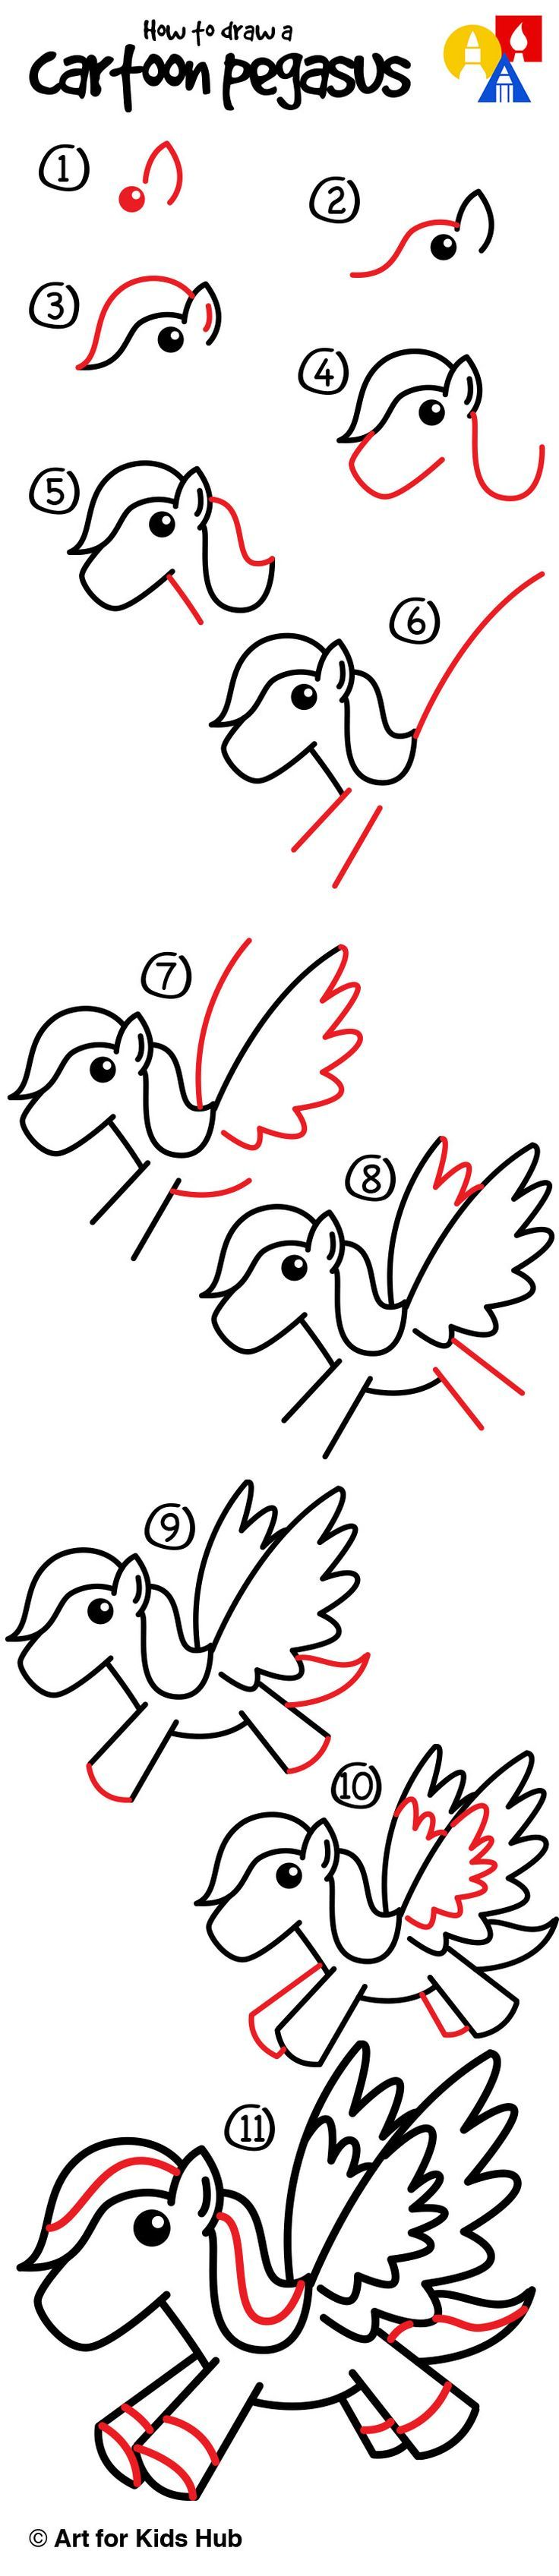 How to draw a cartoon pegasus!